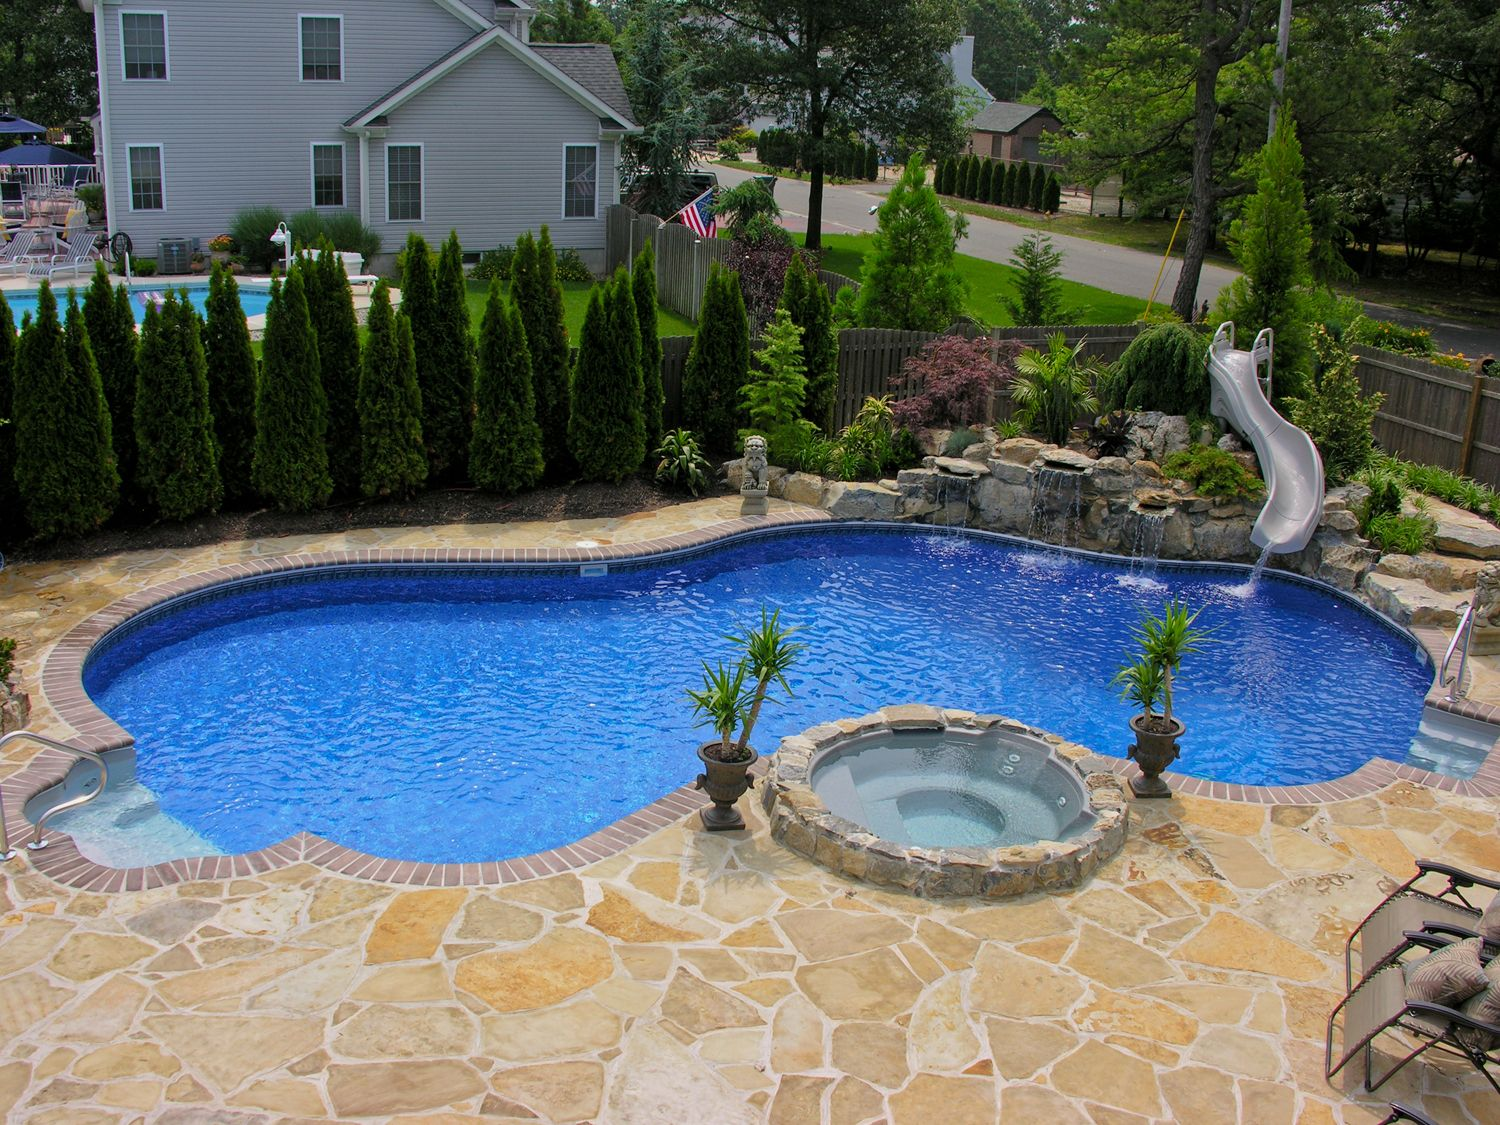 Pool town nj inground swimming pools with spa and slide for Pictures of inground pools